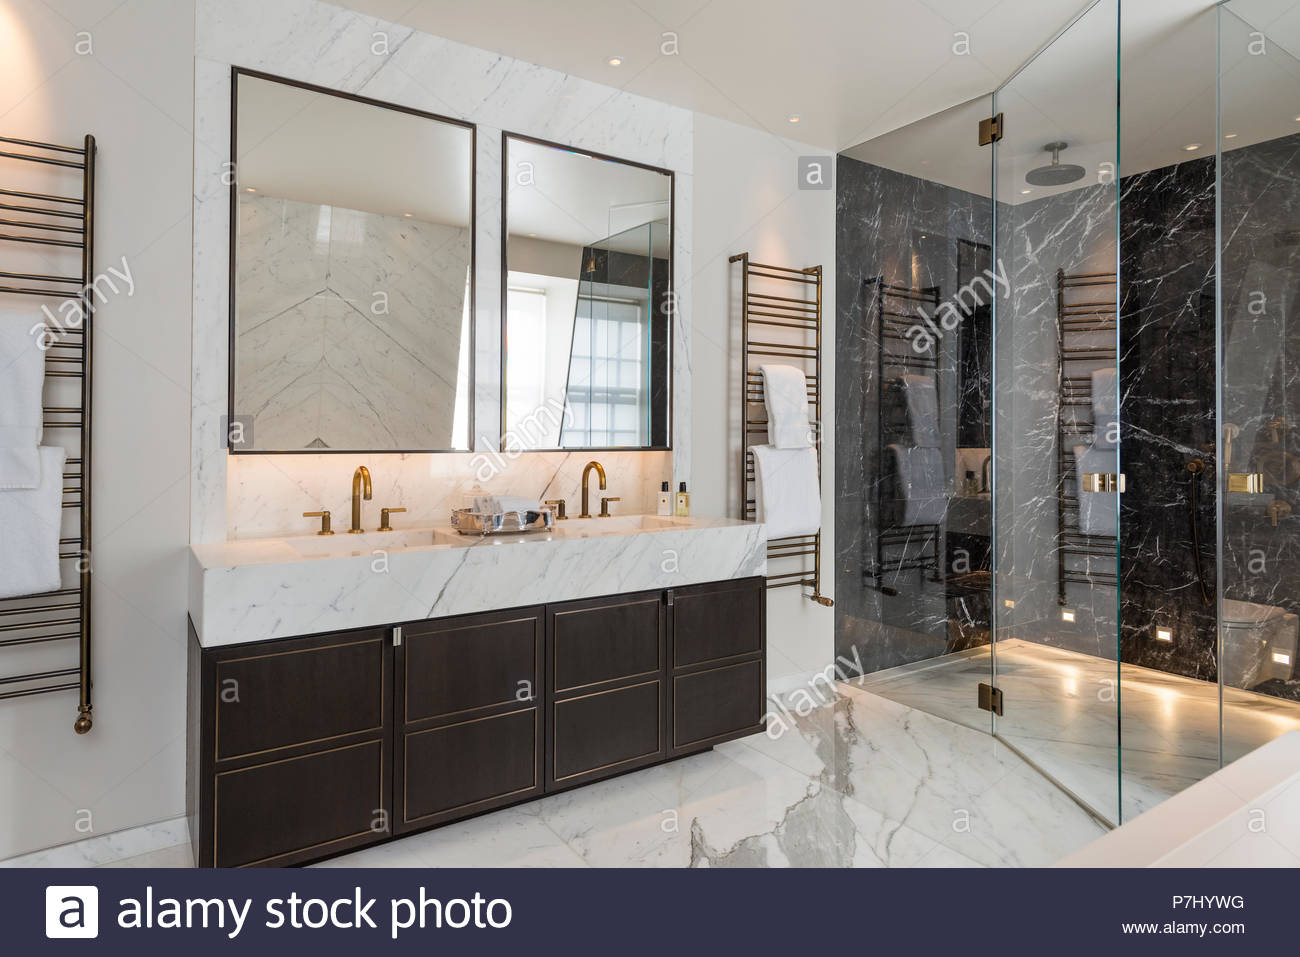 Art Deco Bathroom Shower And Washbasin In Art Deco Bathroom Stock Photo 211222076